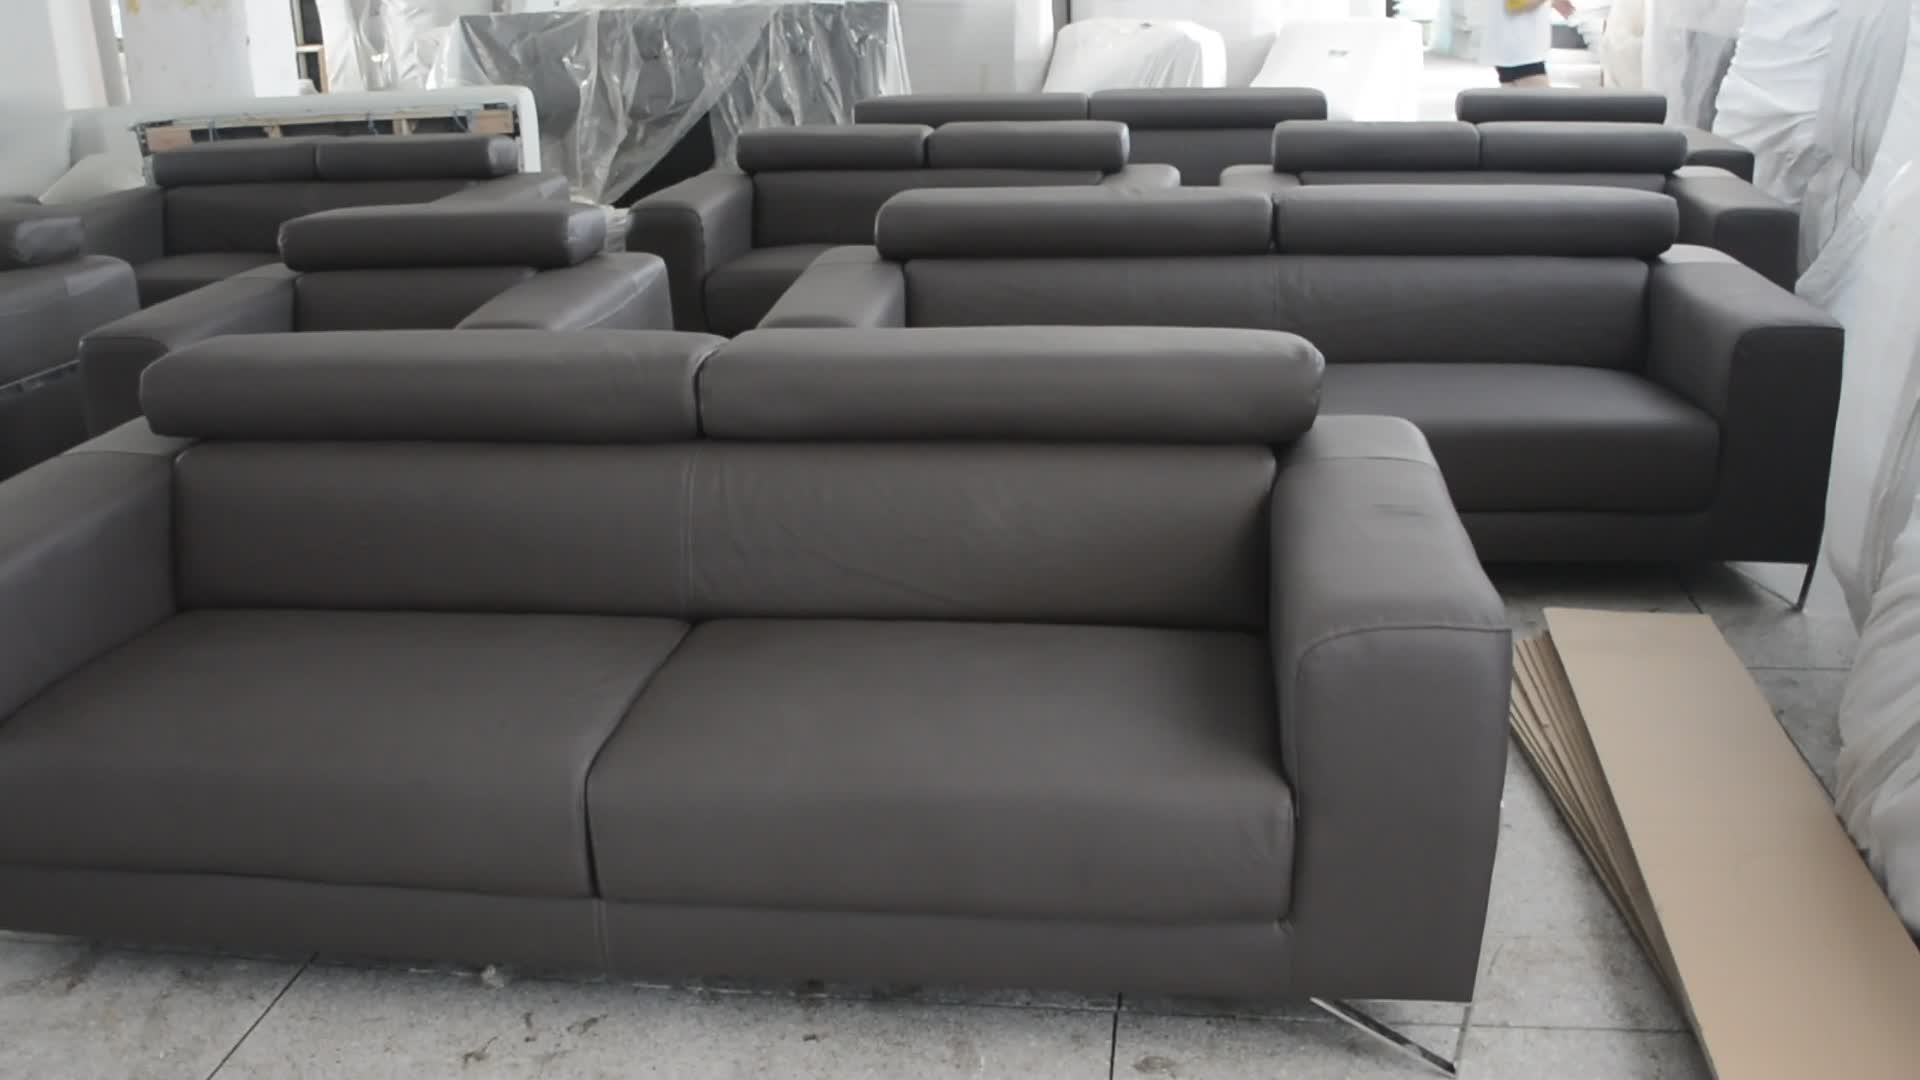 Modern Sofa Stainless Metal Italian Leather 321 From Chinese Manufacturer